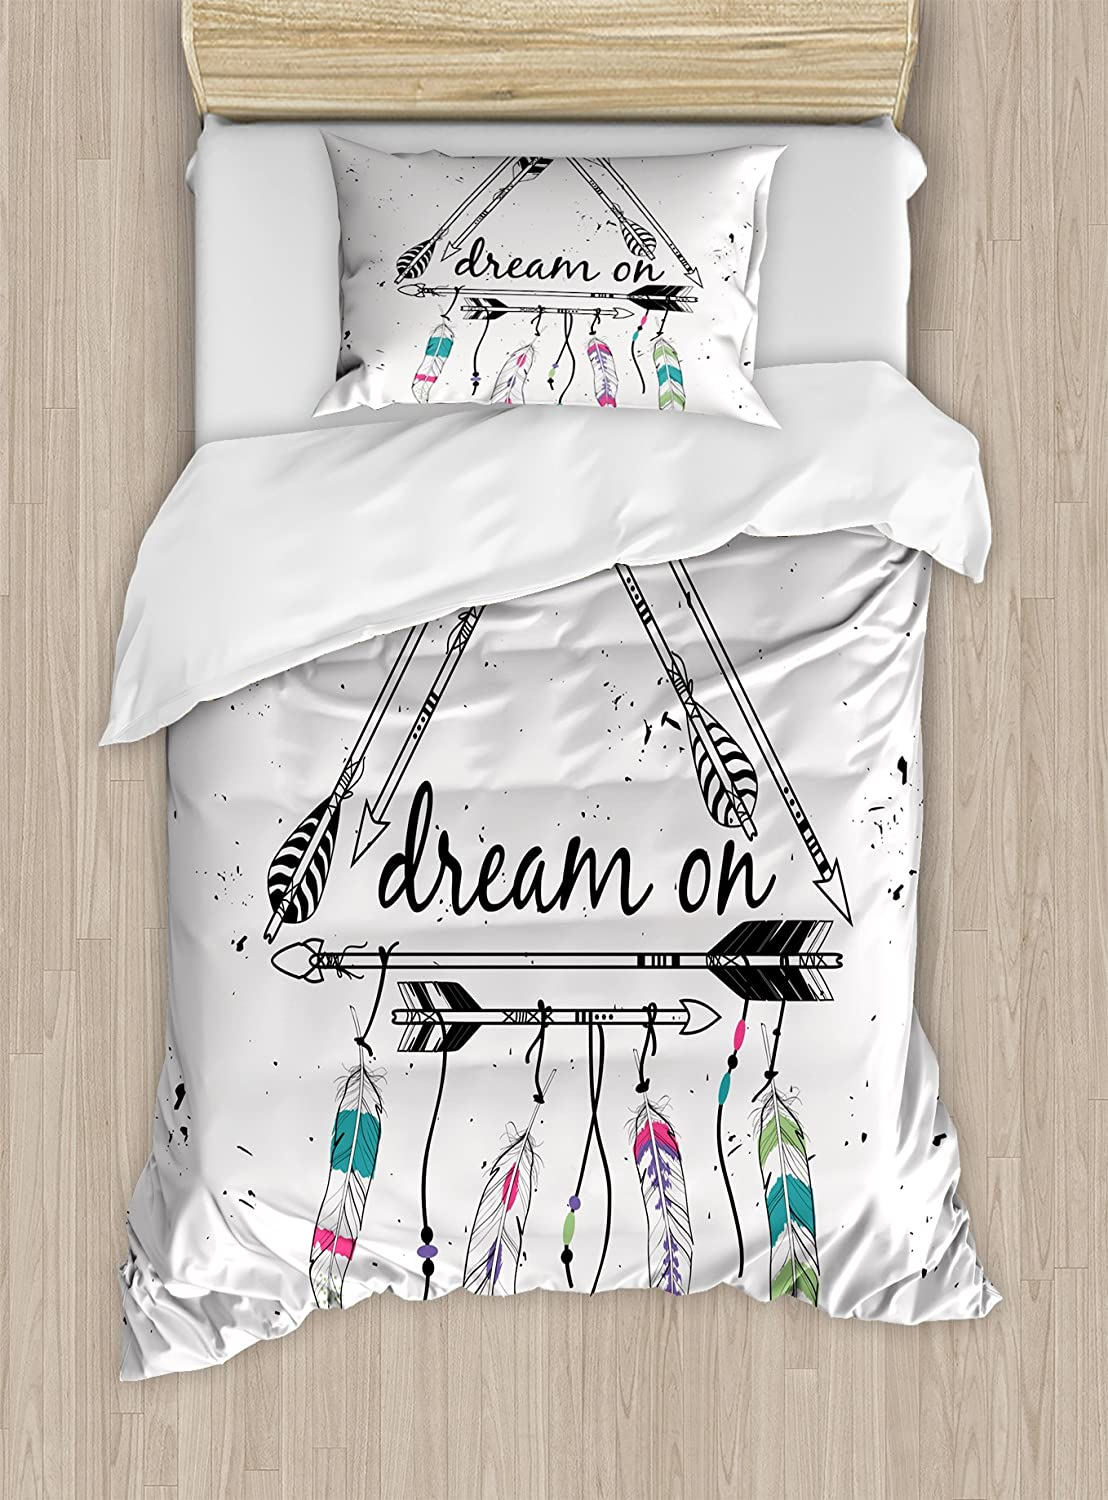 Ambesonne Indie Duvet Cover Set, Boho Style Arrows Triangle Shape Dream Hand Writing Feathers, Decorative 2 Piece Bedding Set with 1 Pillow Sham, Twin Size, Teal Black